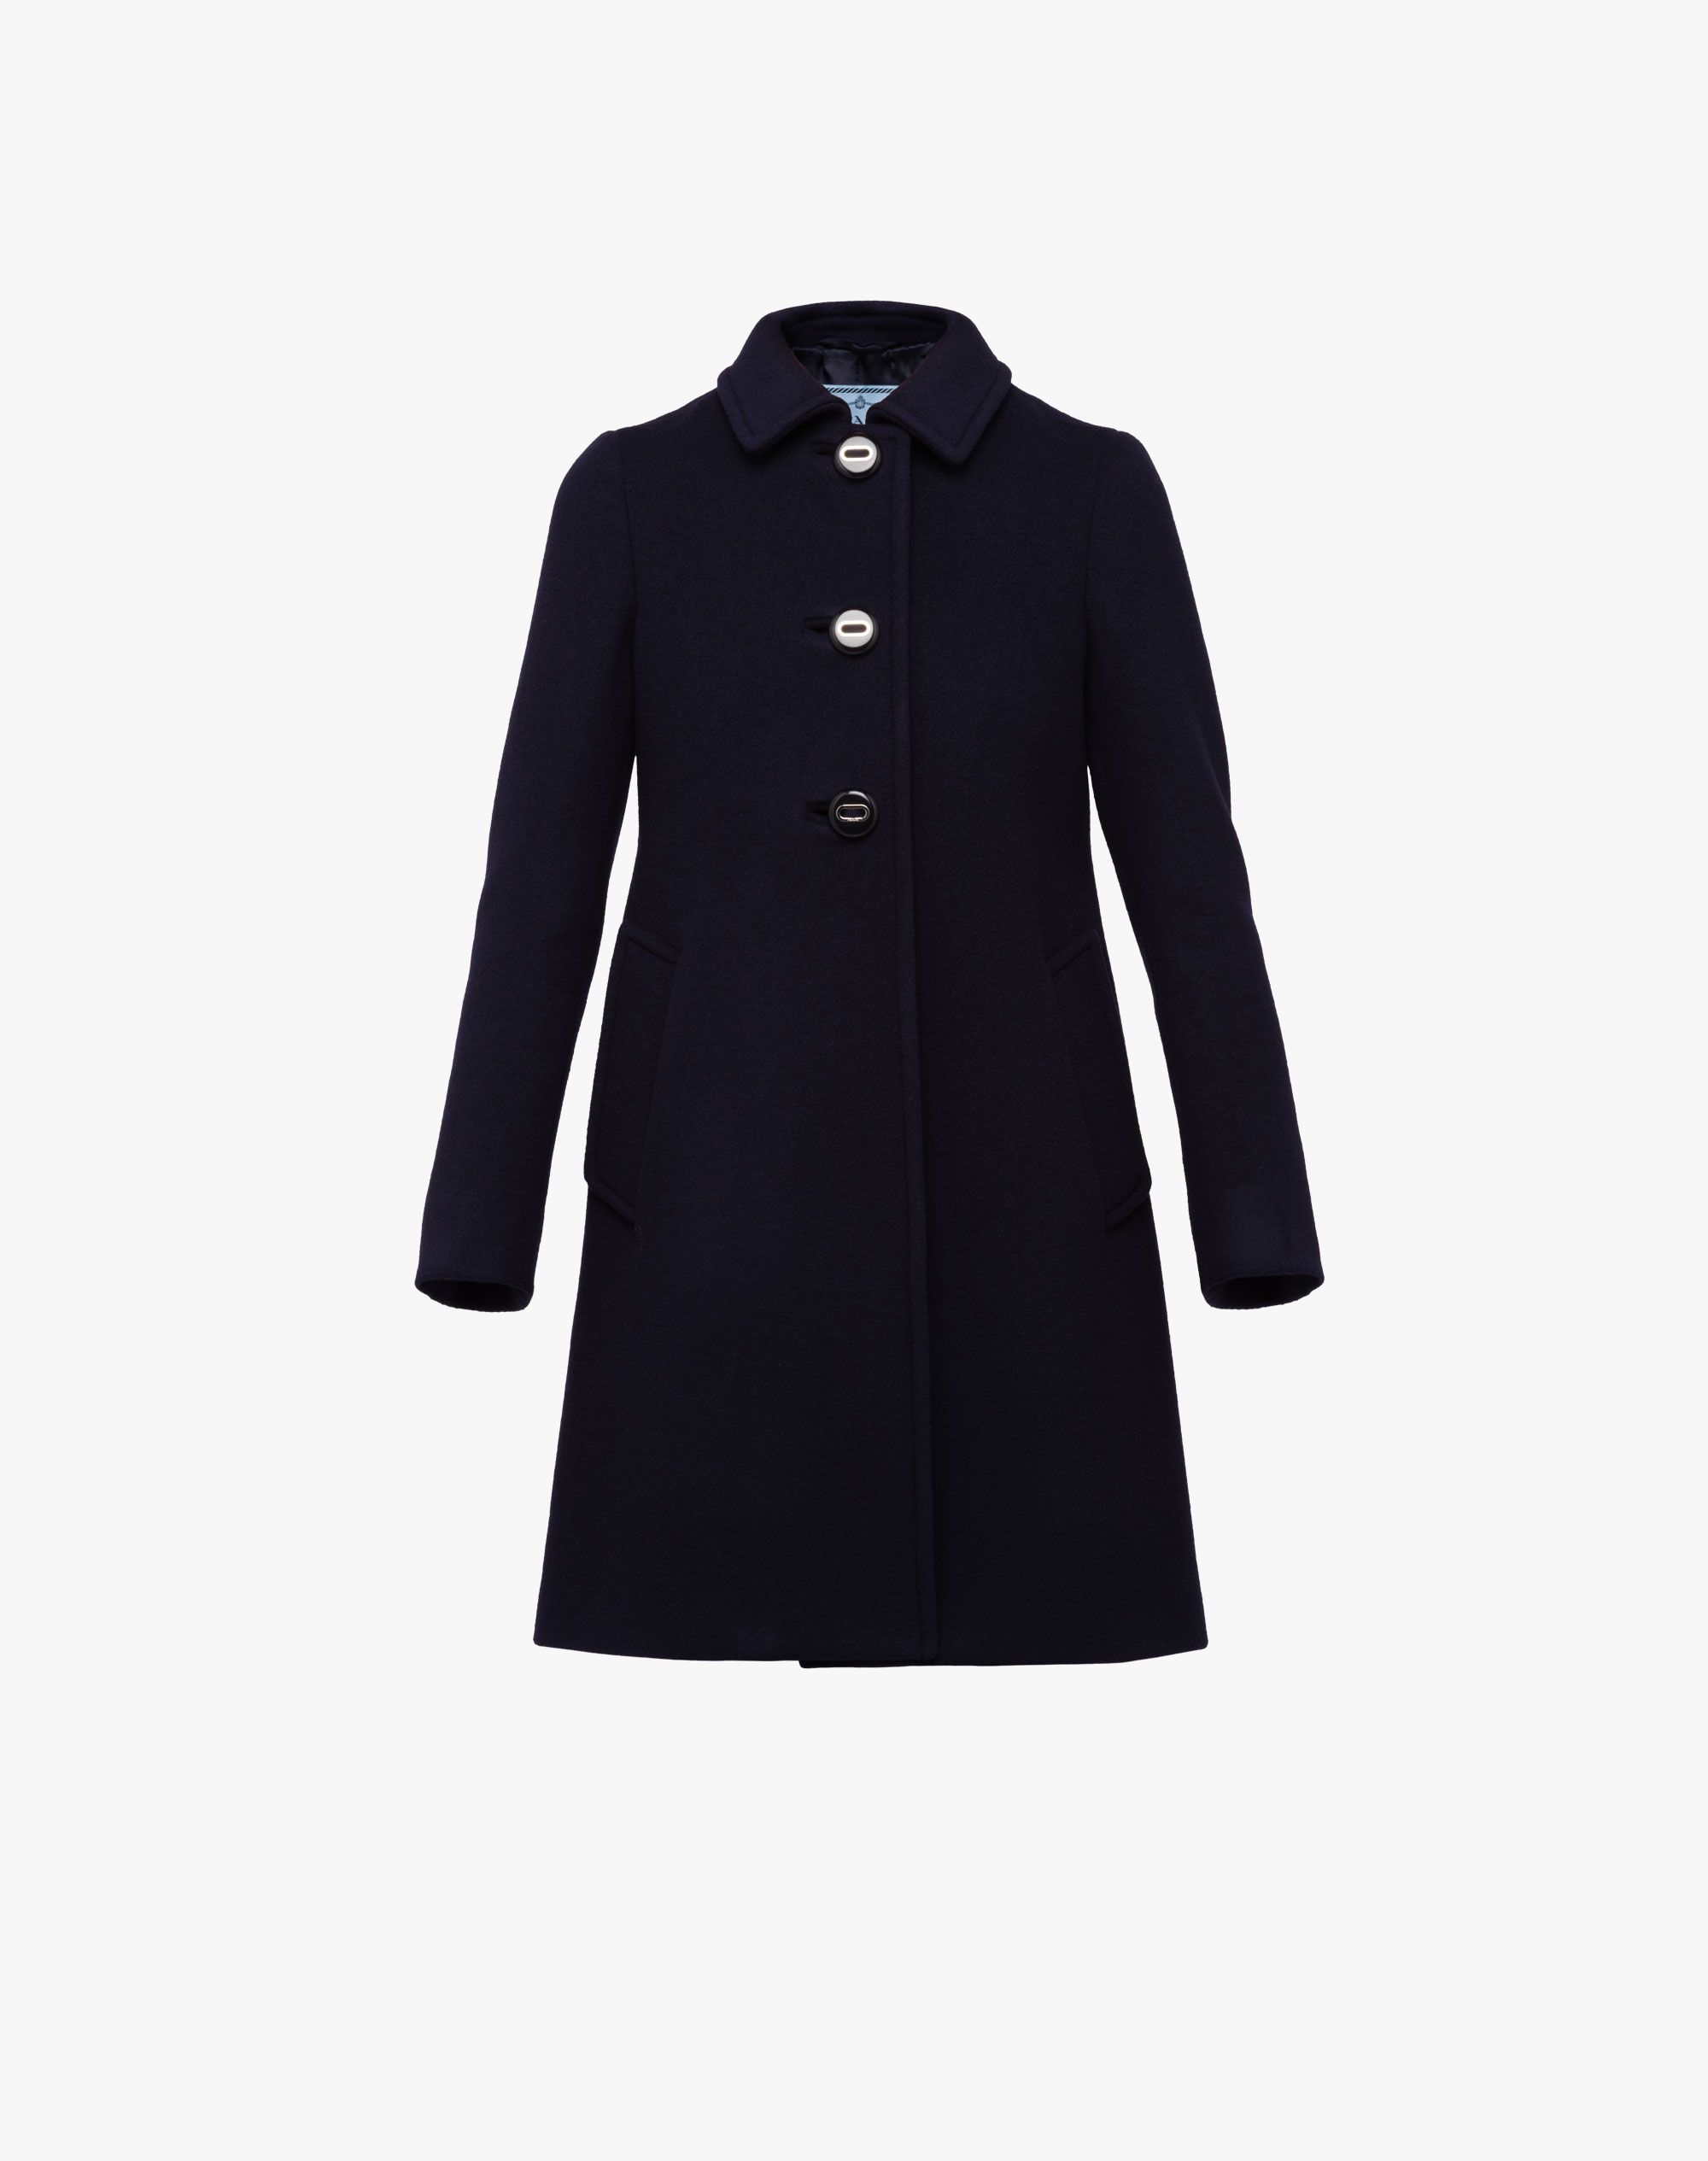 wool cloth overcoat $2,550